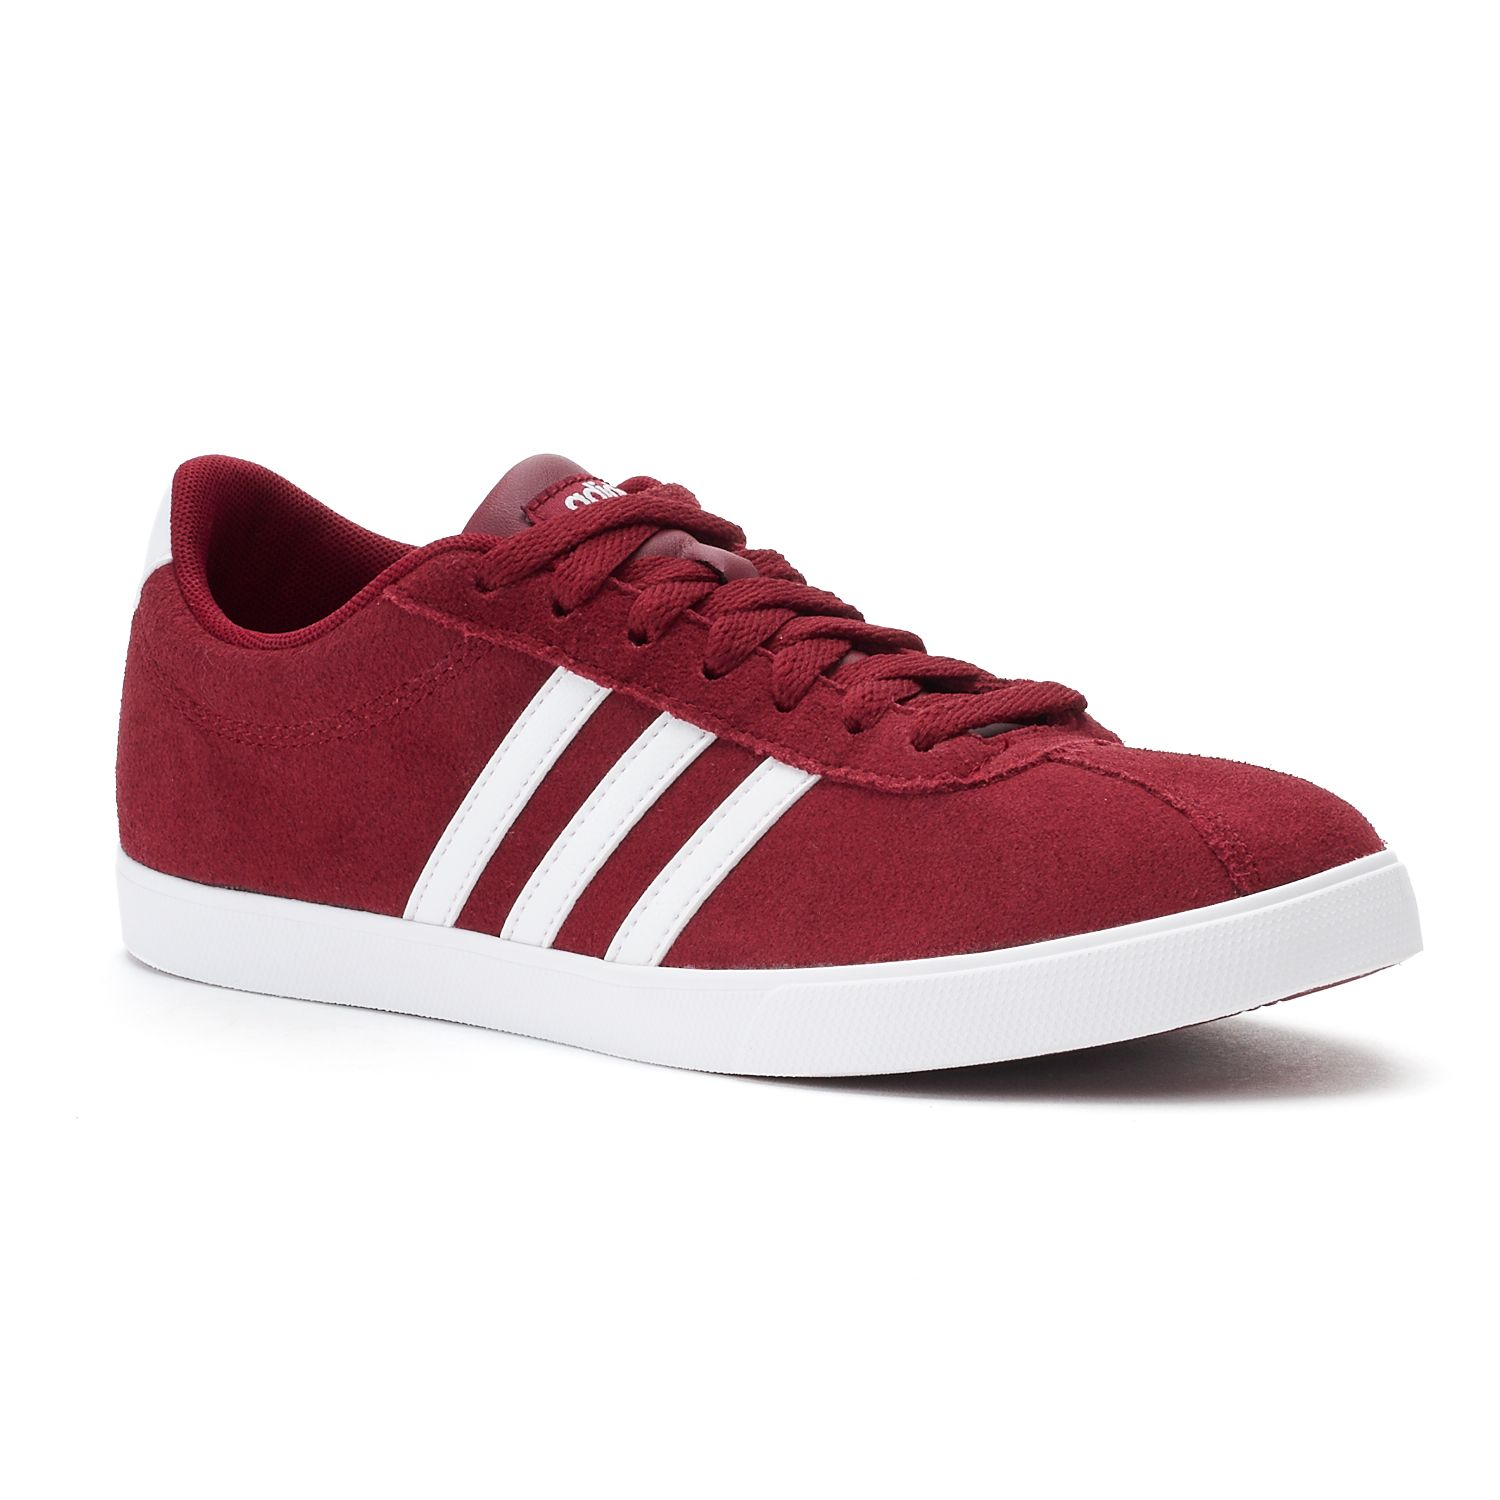 adidas Courtset Women\u0027s Suede Sneakers. Gray White Navy Red